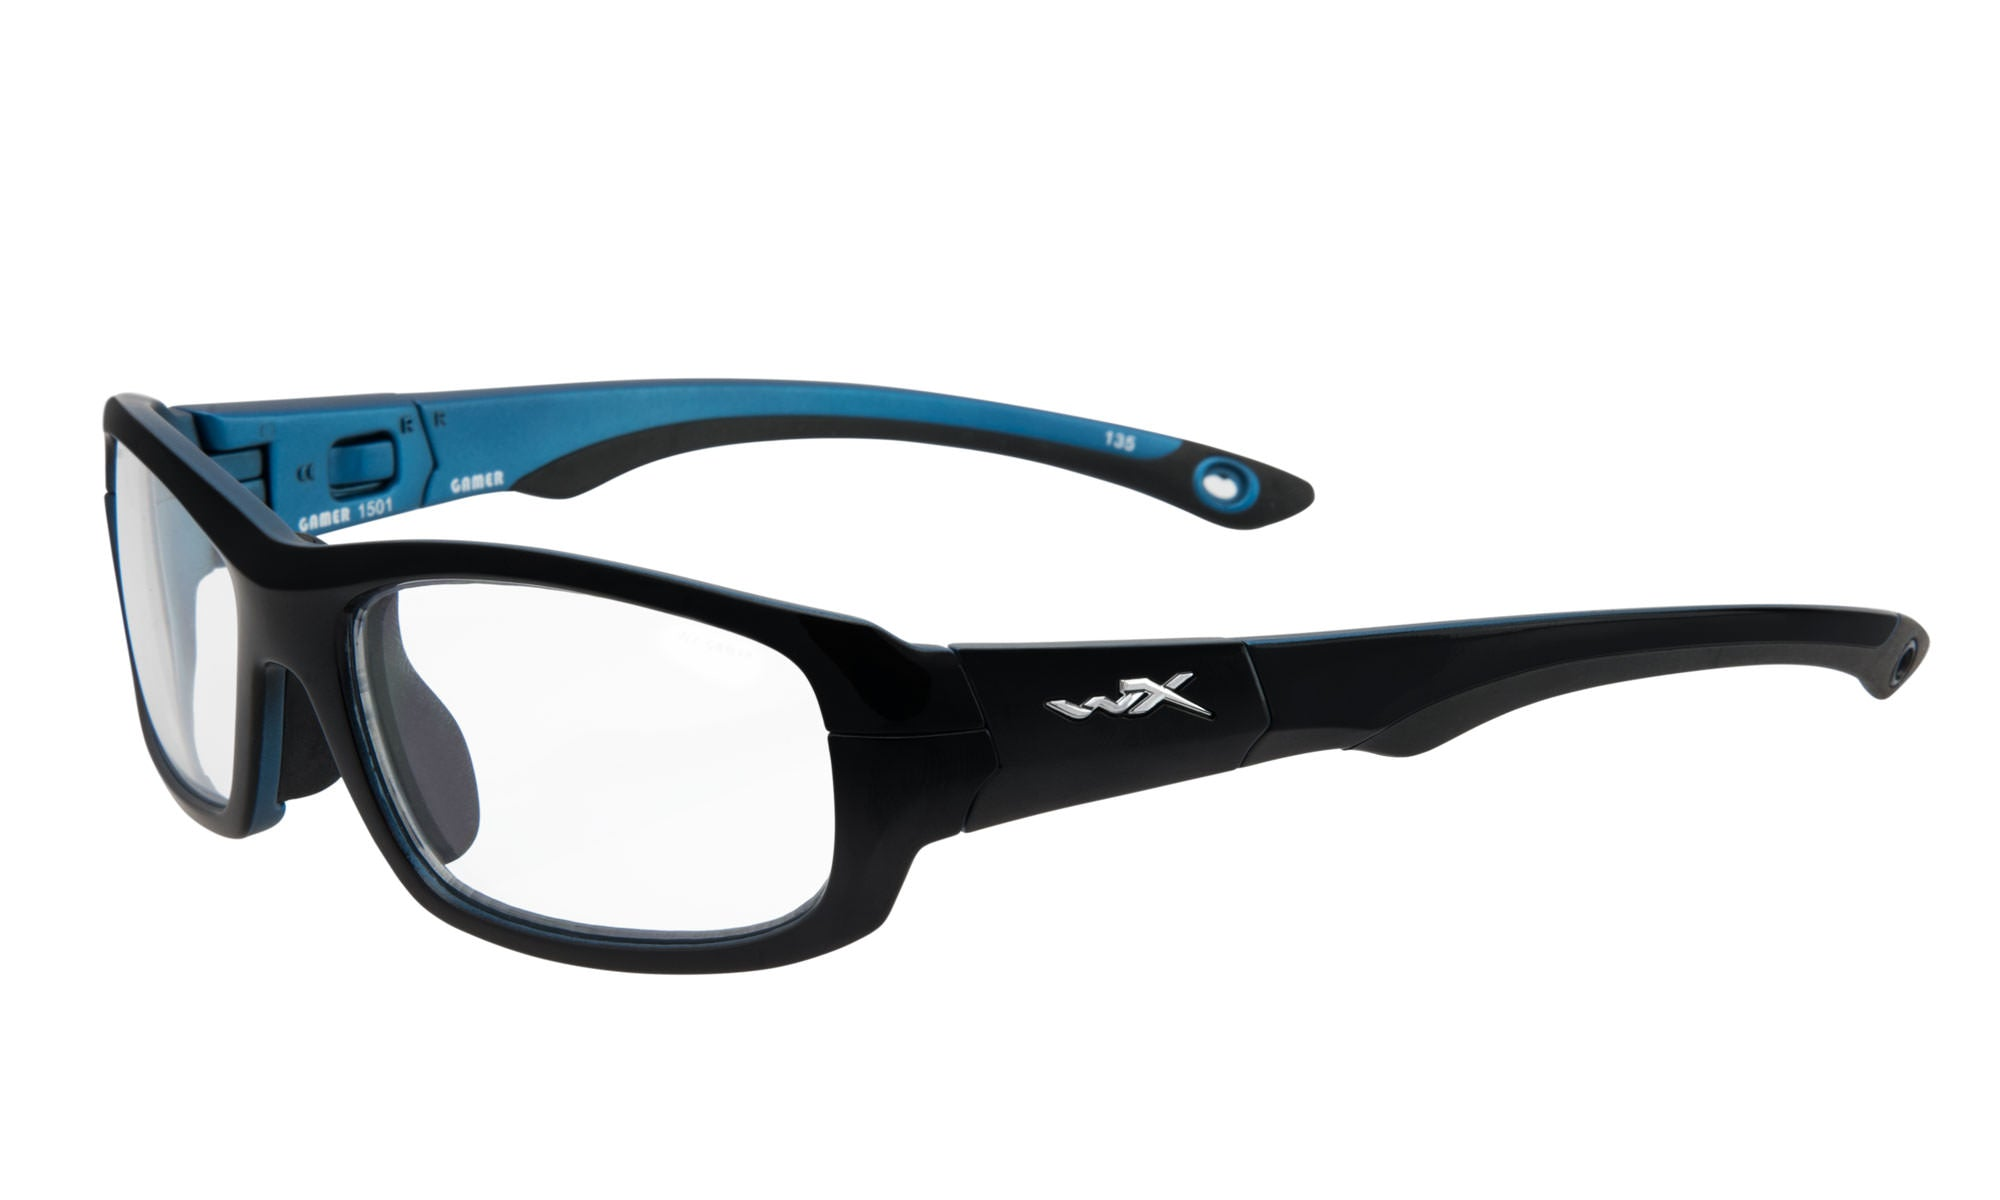 WILEY X YOUTH SUNGLASSES - WX GAMER (2 OPTIONS)